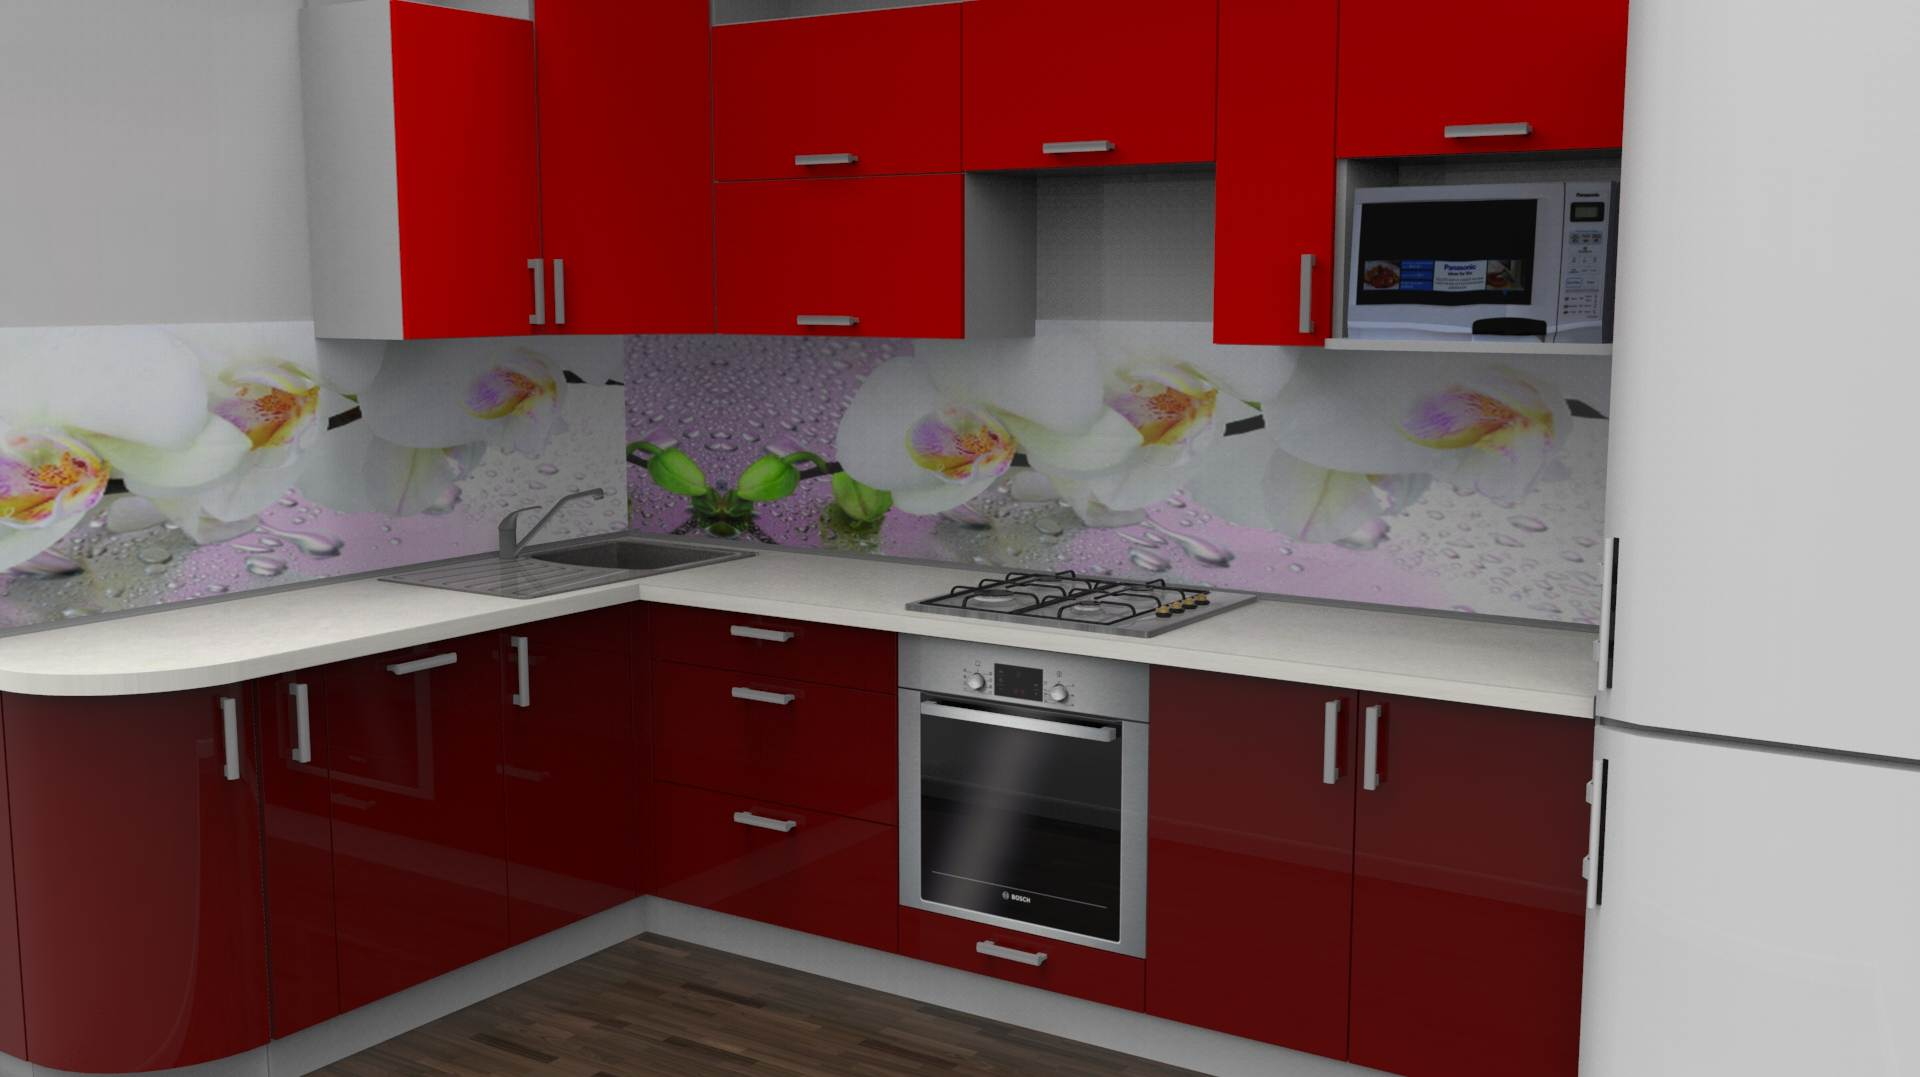 28 prodboard online kitchen planner 3d prodboard for 3d kitchen planner online